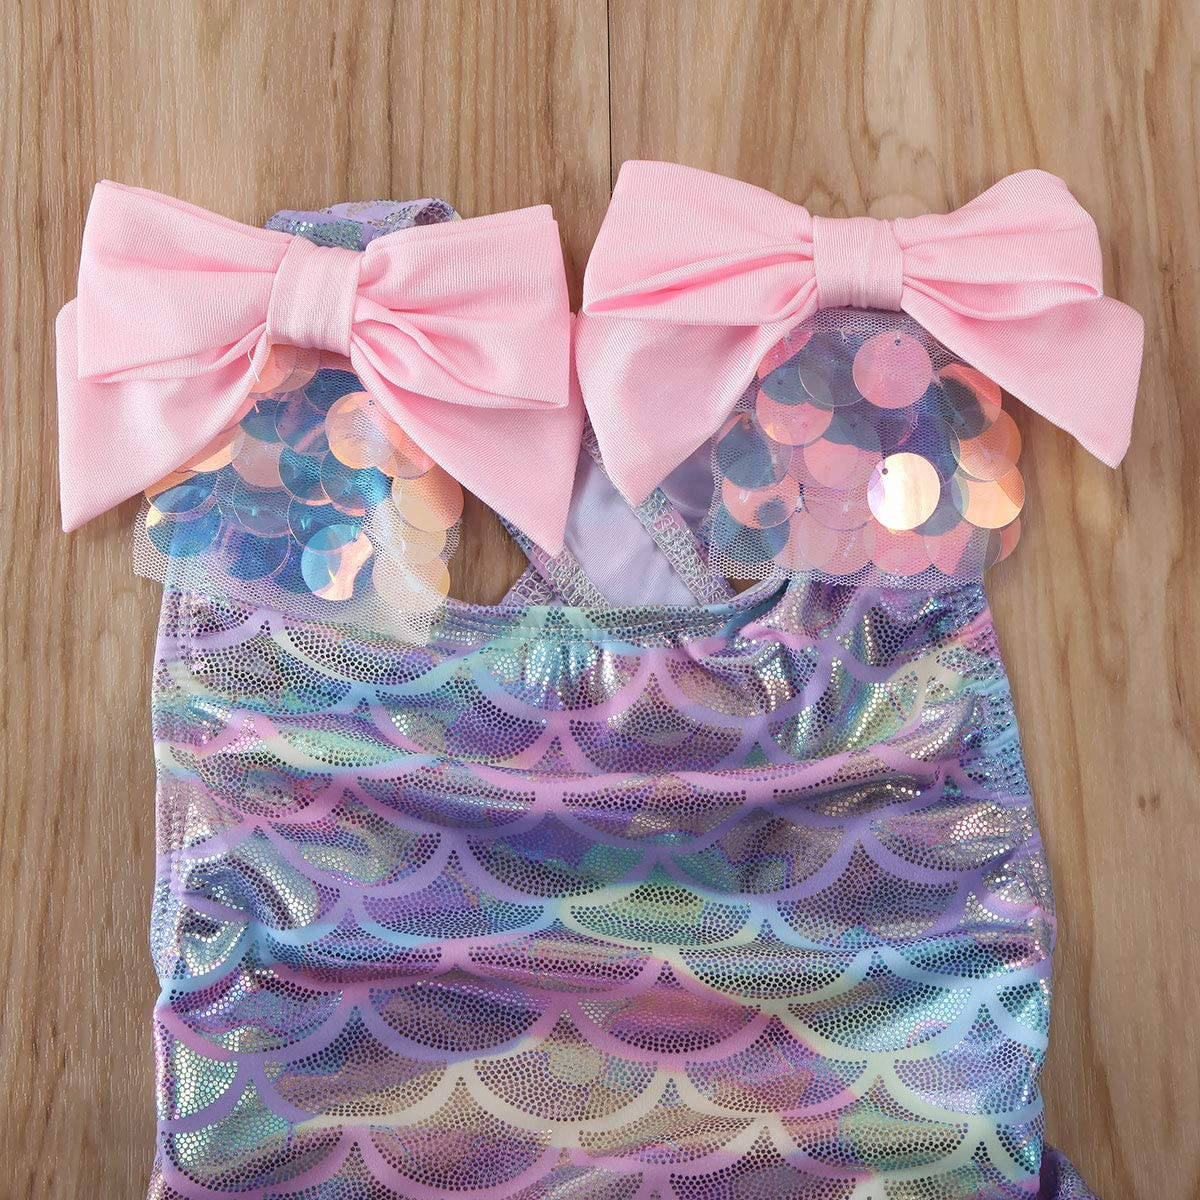 Infant Toddler Baby Girls Colorful Fish Scale Mermaid Ruffles Sleeve One-Piece Swimwear Swimsuit Bathing Suit for 0-4T